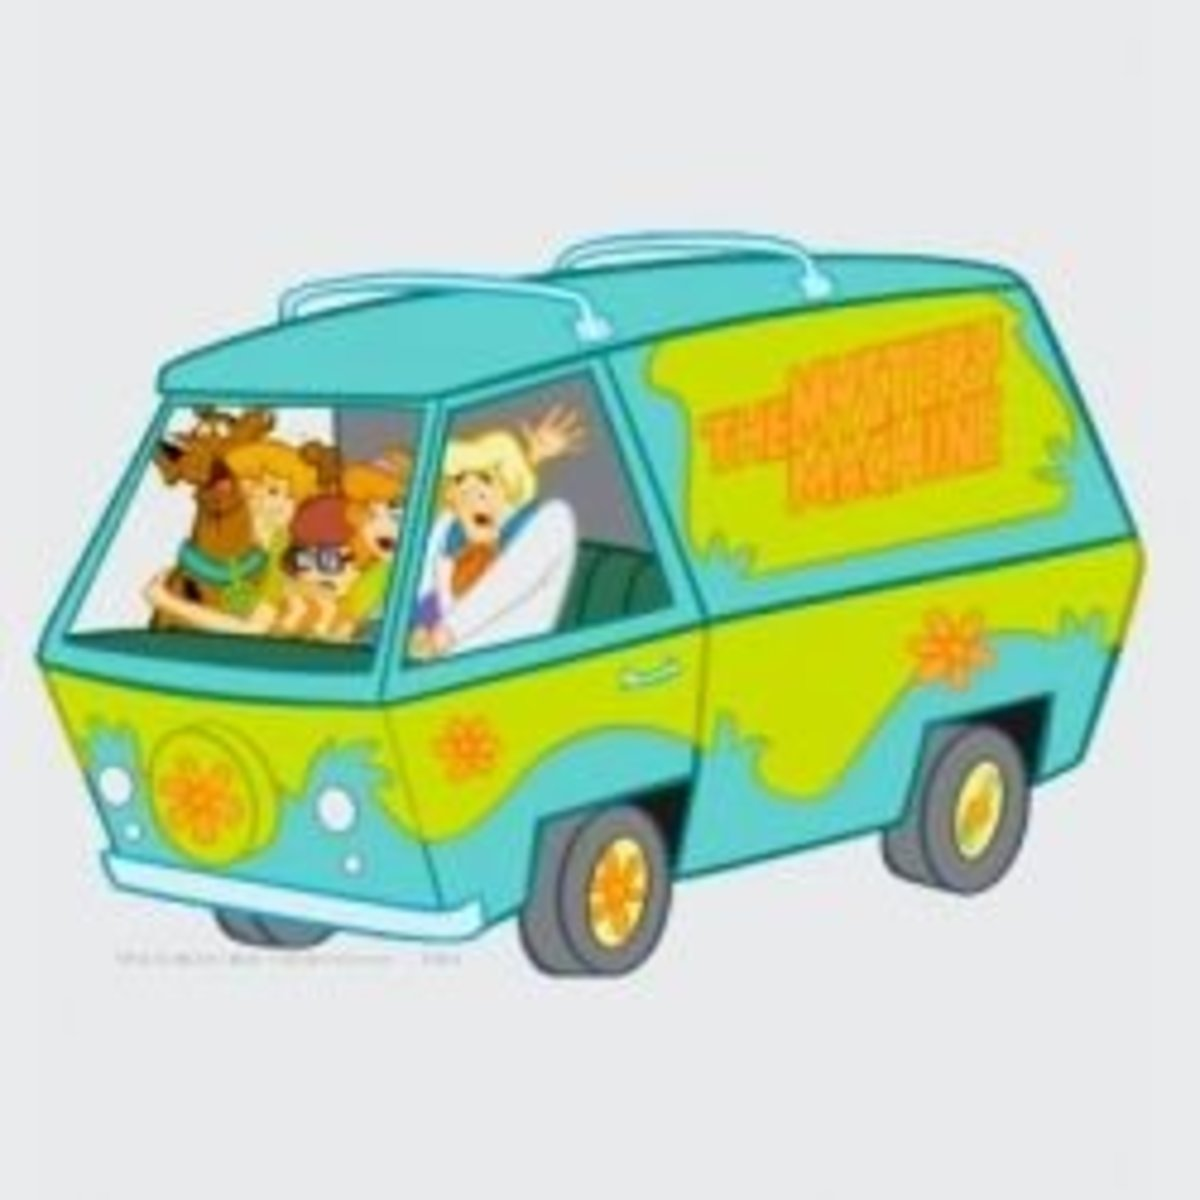 A Van Icon: The Mystery Machine (credit: Zazzle)